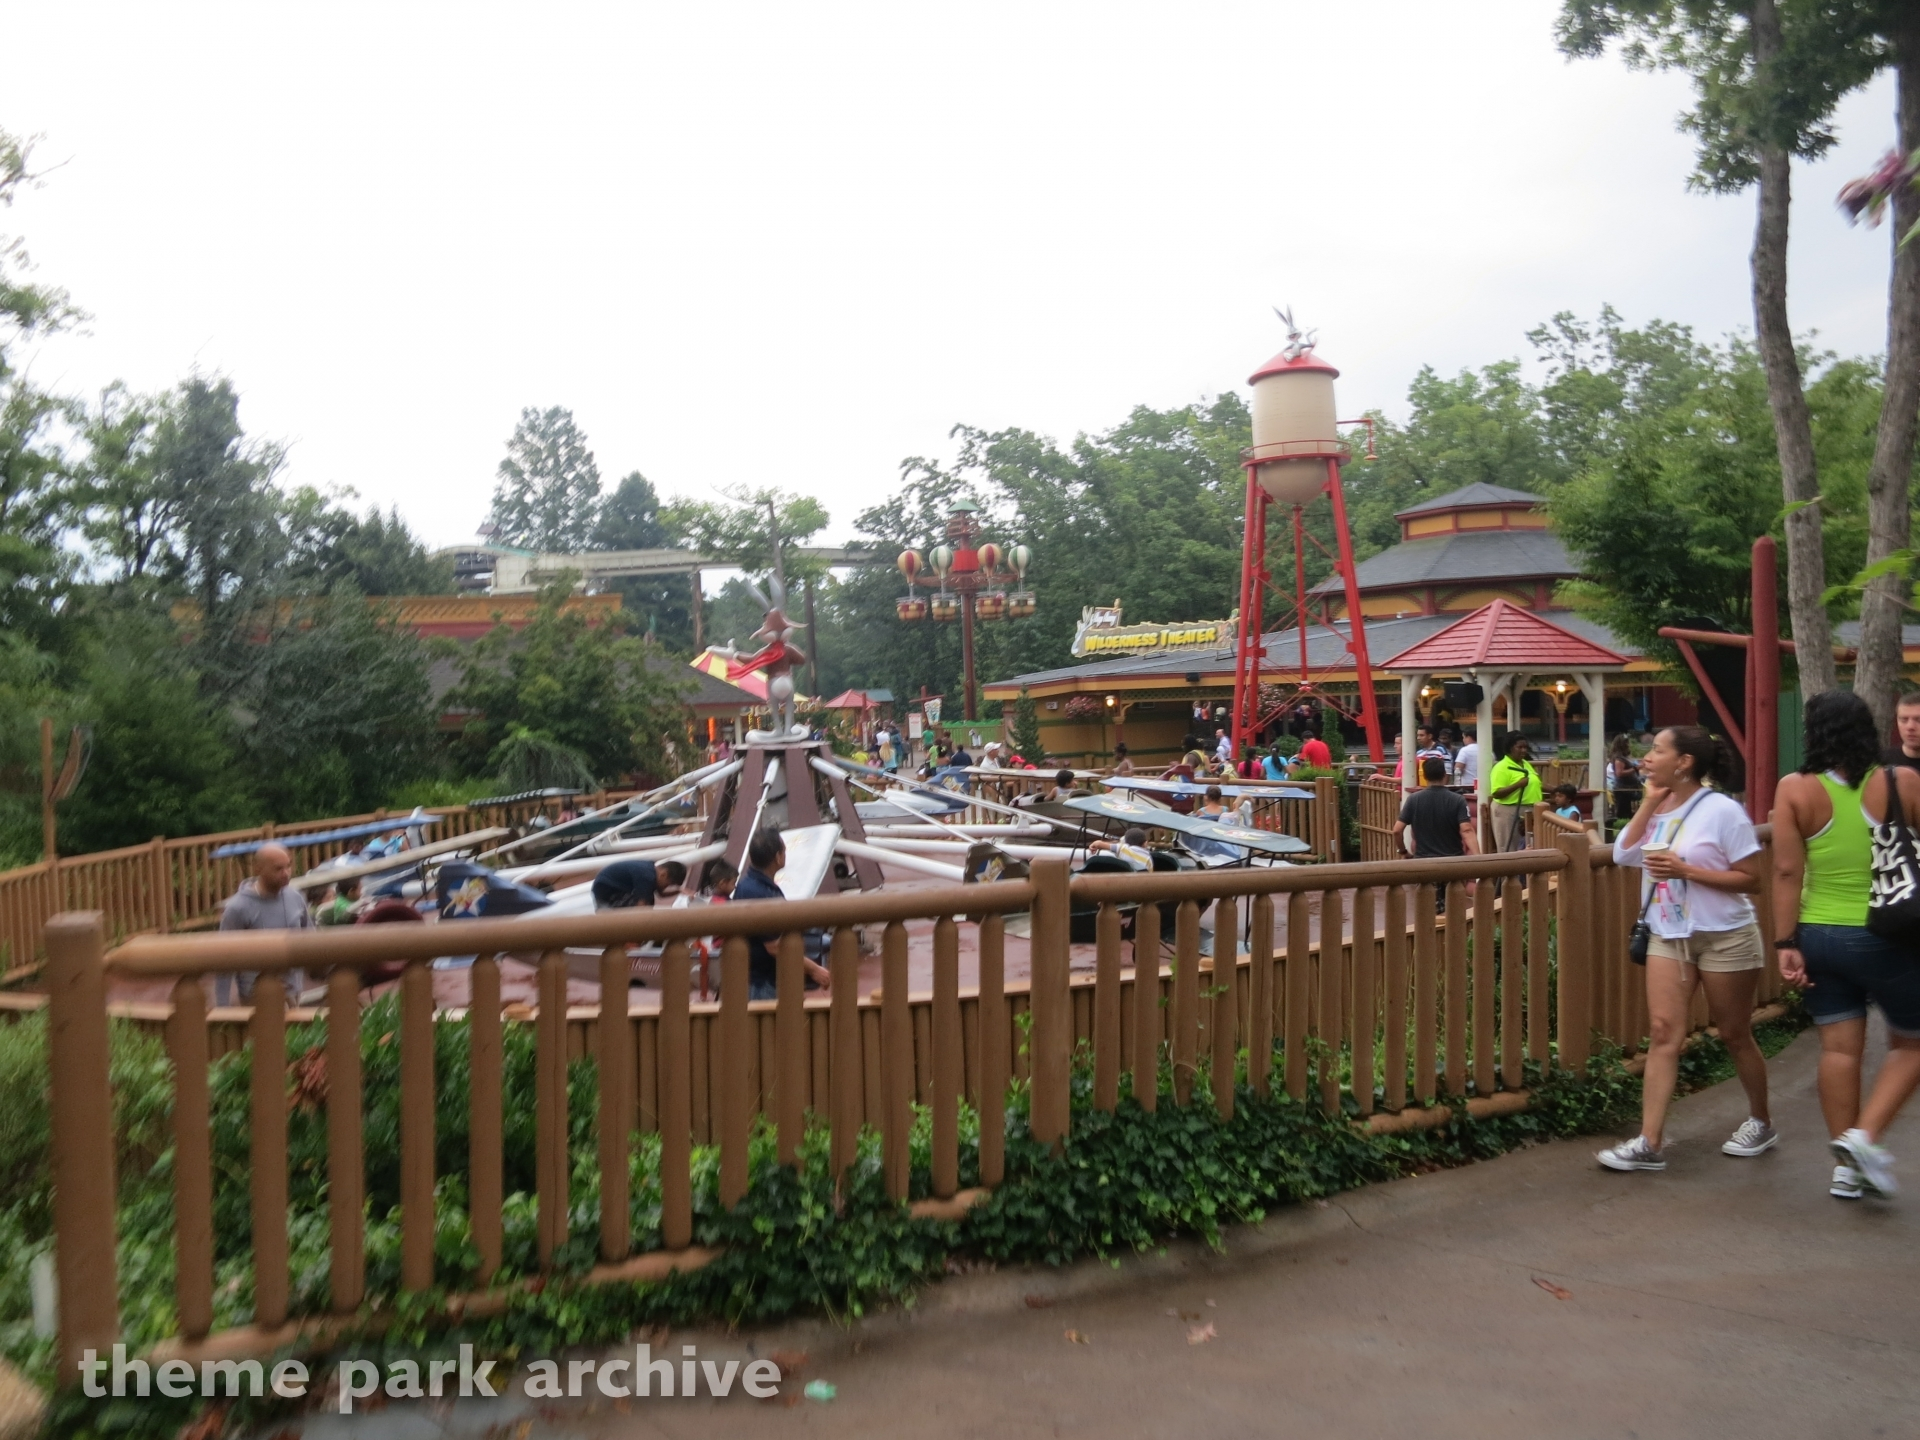 Bugs Bunny National Park at Six Flags Great Adventure